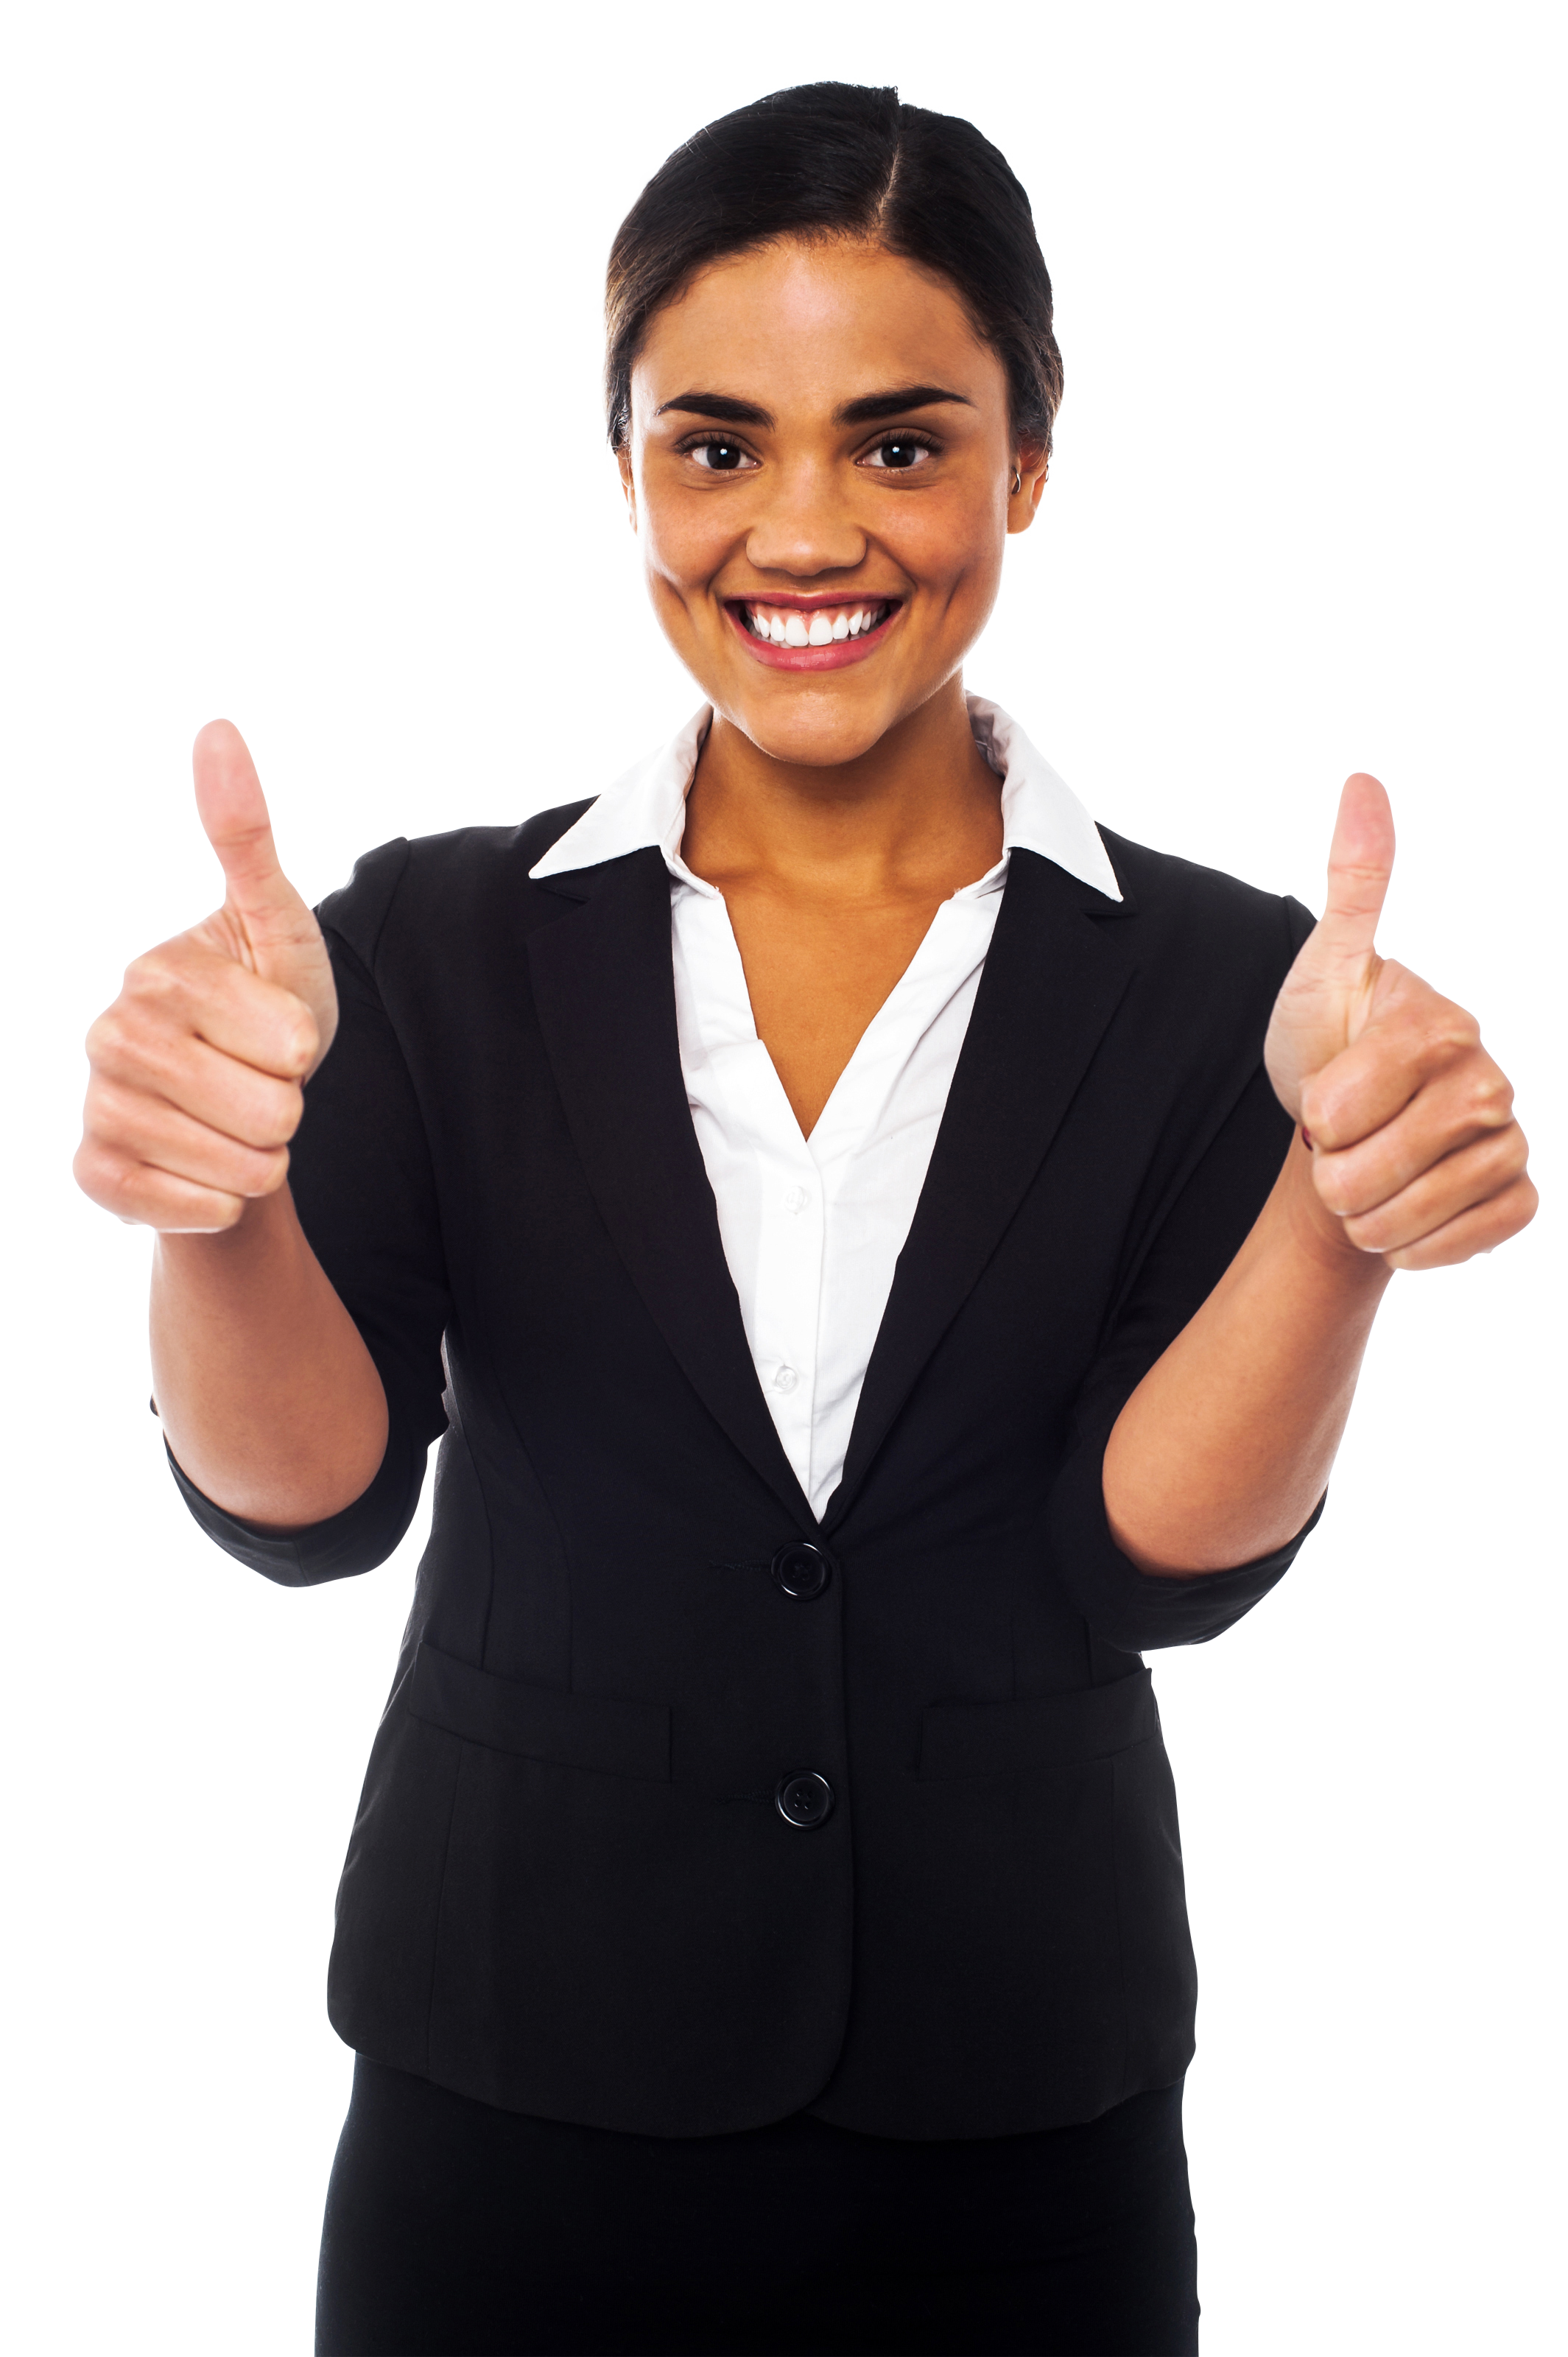 Women thumbs up png. Pointing clipart gesture